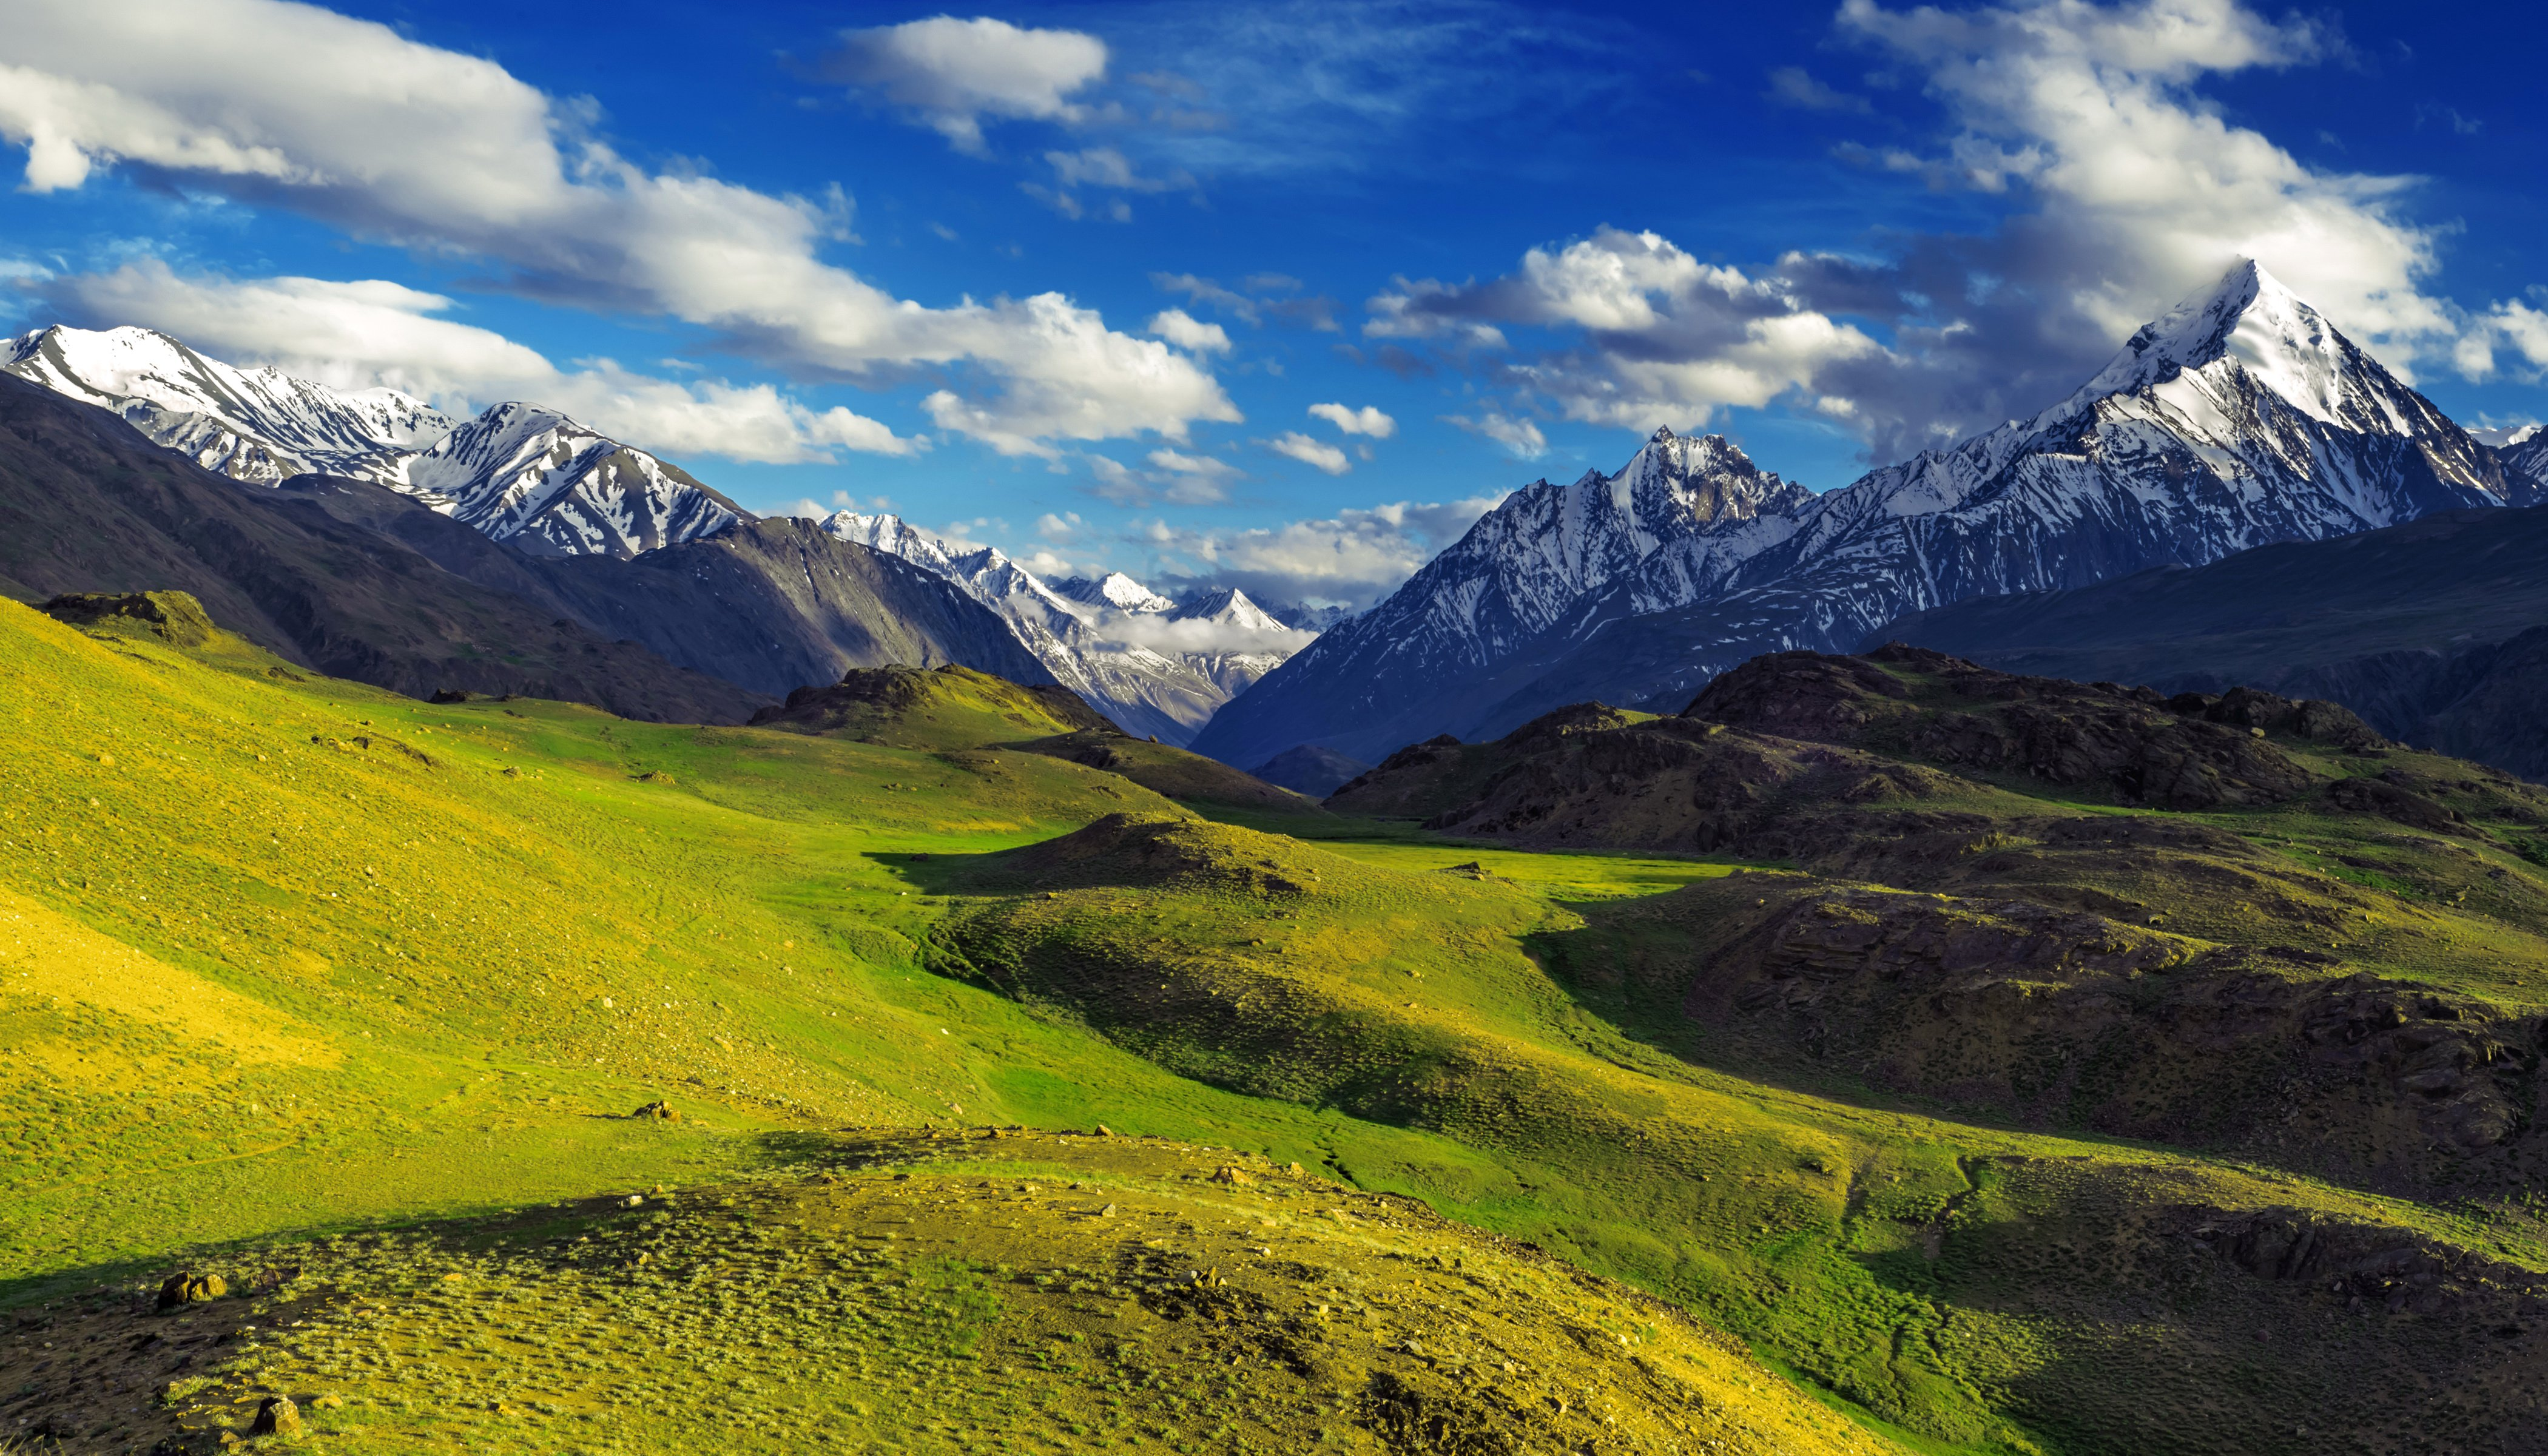 india scenery mountains himalayas clouds nature wallpaper